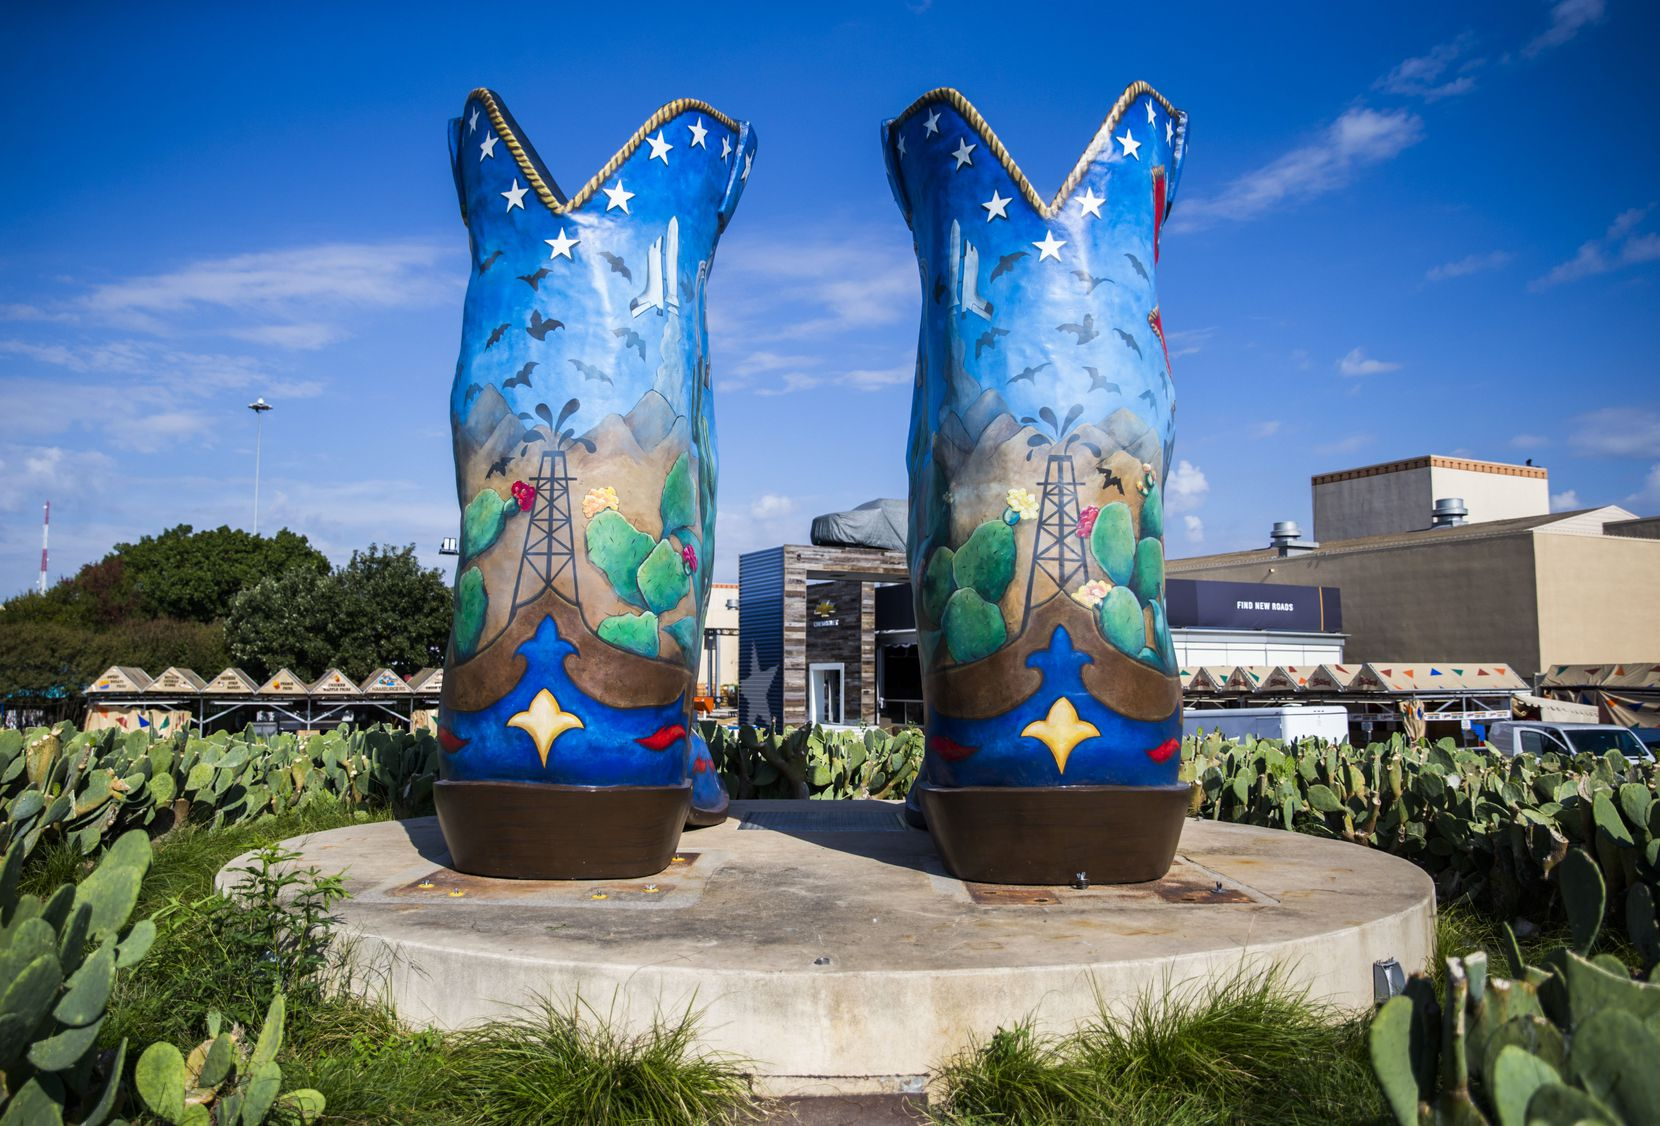 Prior to the opening of the 2019 State Fair of Texas, Big Tex's new boots sat on display at Fair Park on Friday, September 13, 2019 before the big guy was put back up for the fair. The design on the new pair of boots was by Katie Sauceda of Keller, Texas.